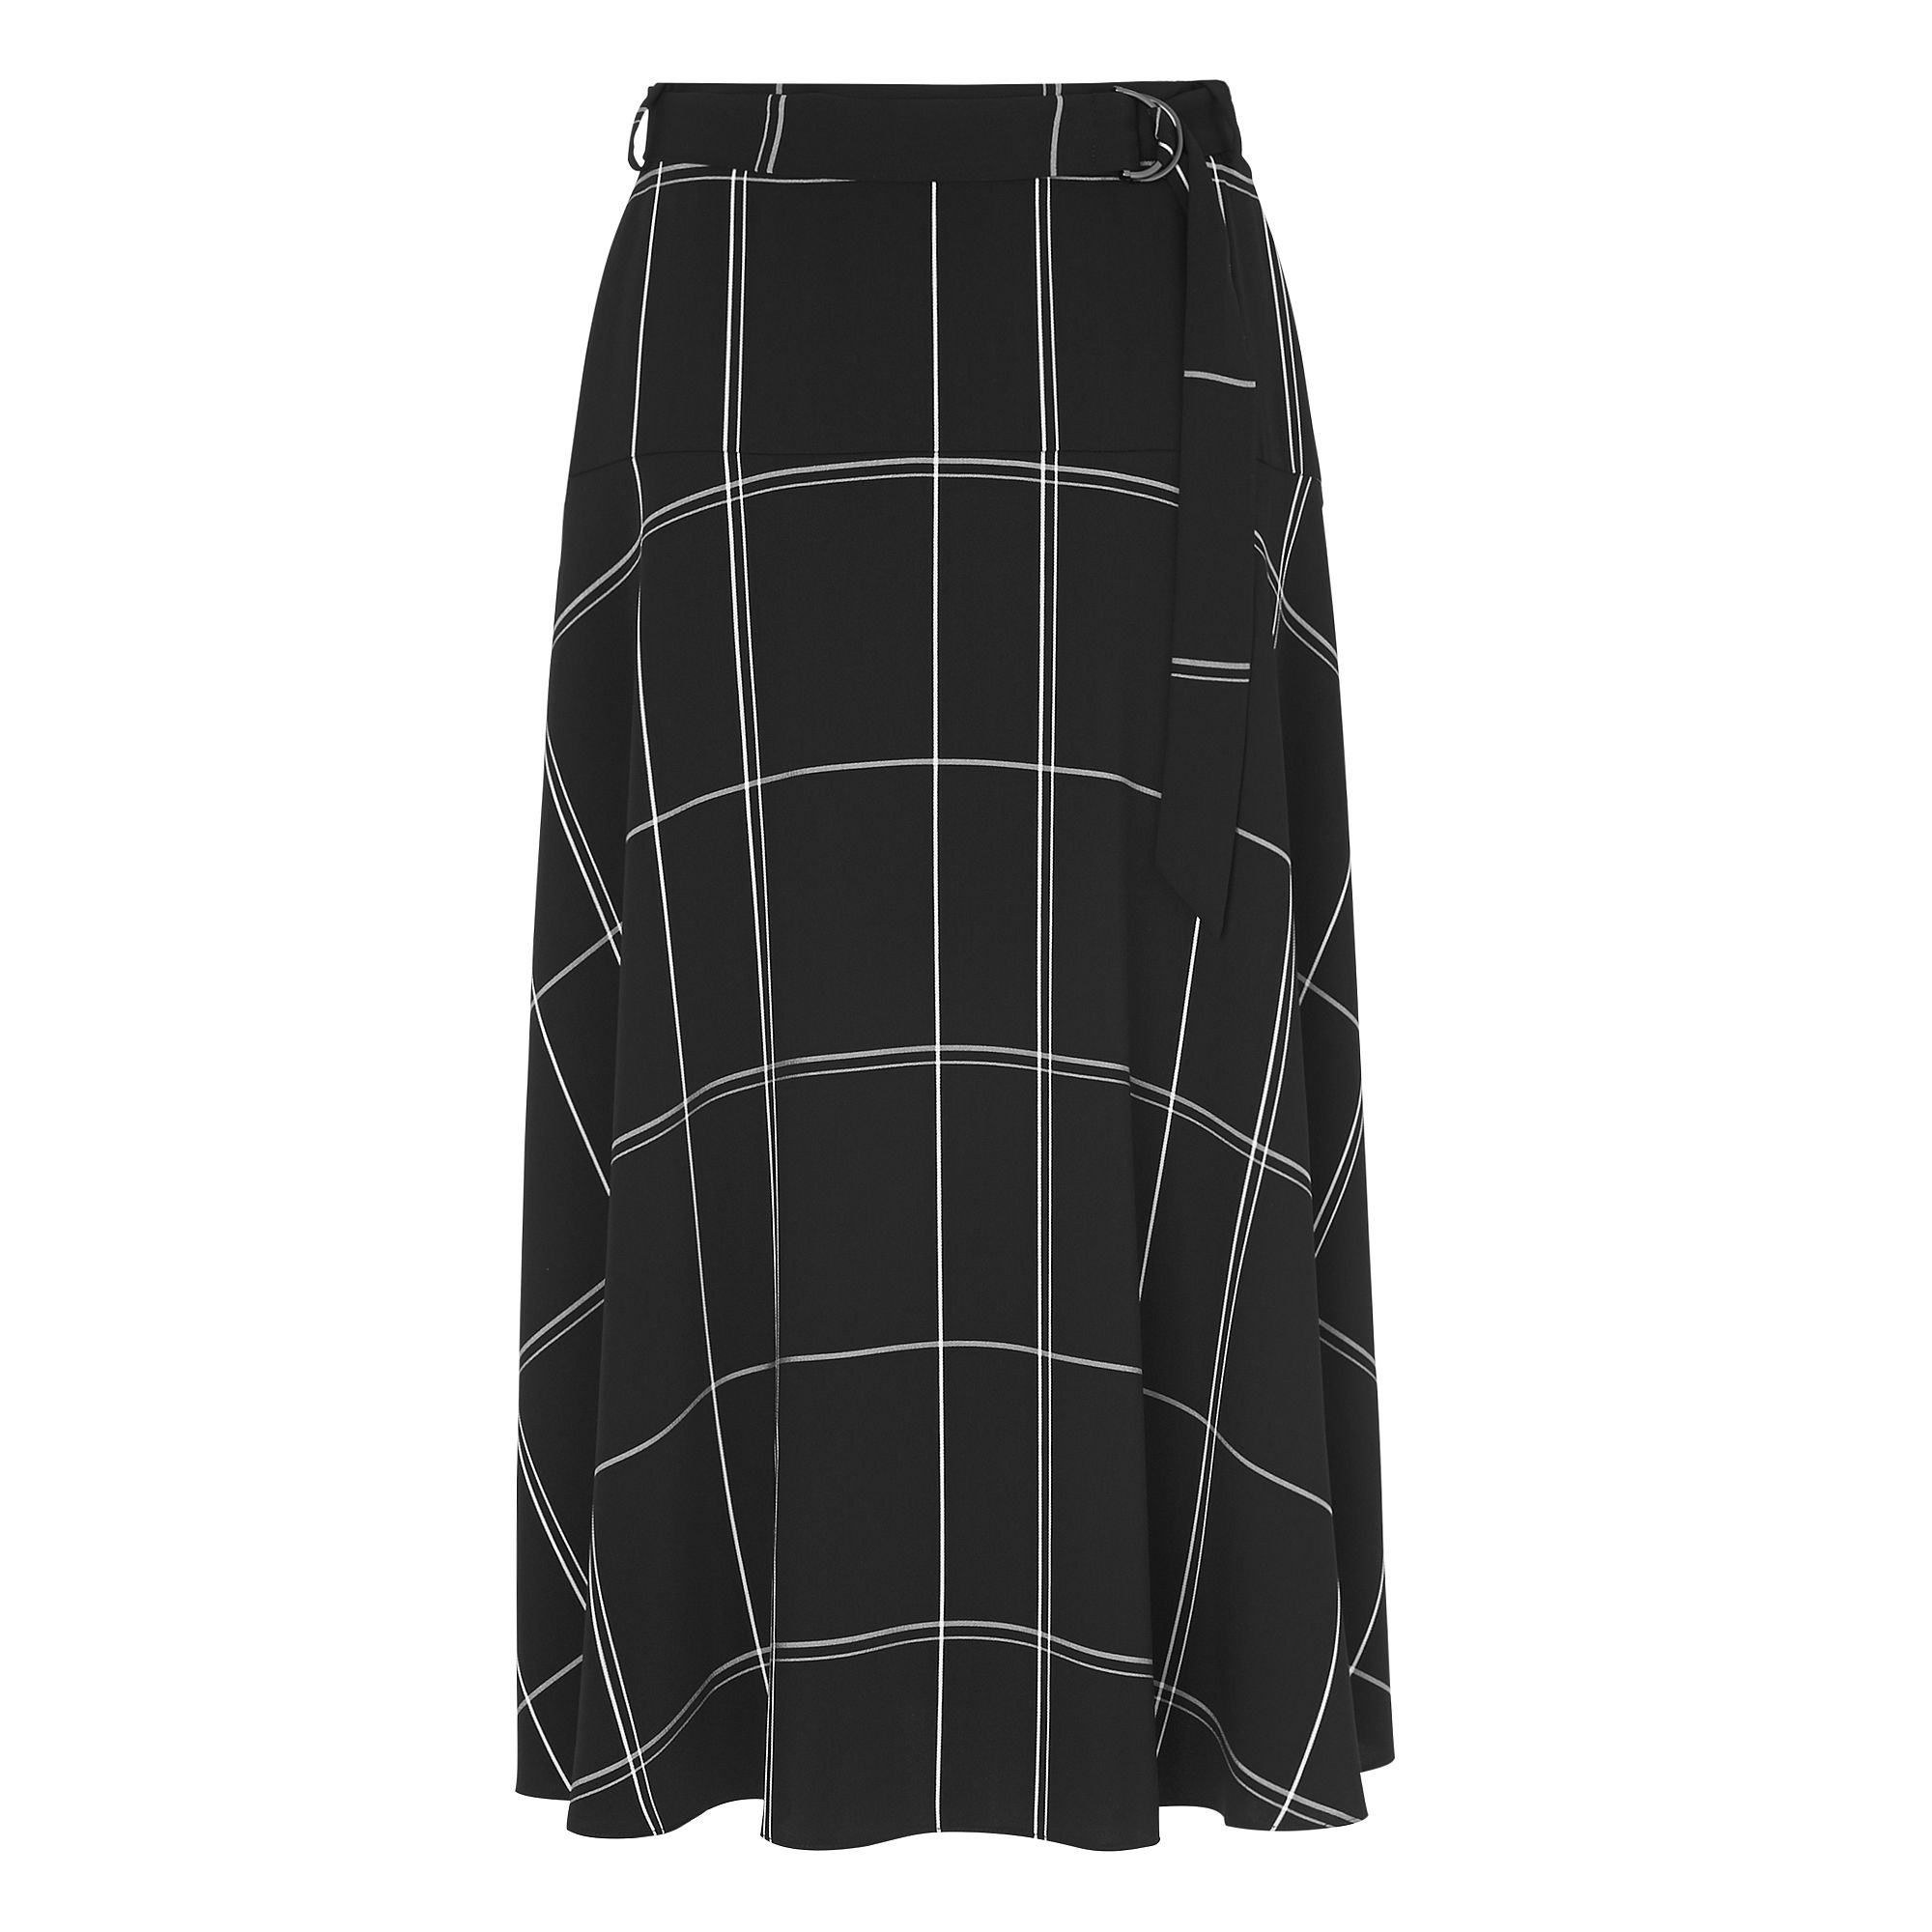 L.K. Bennett Dinah Black Check Skirt, Black